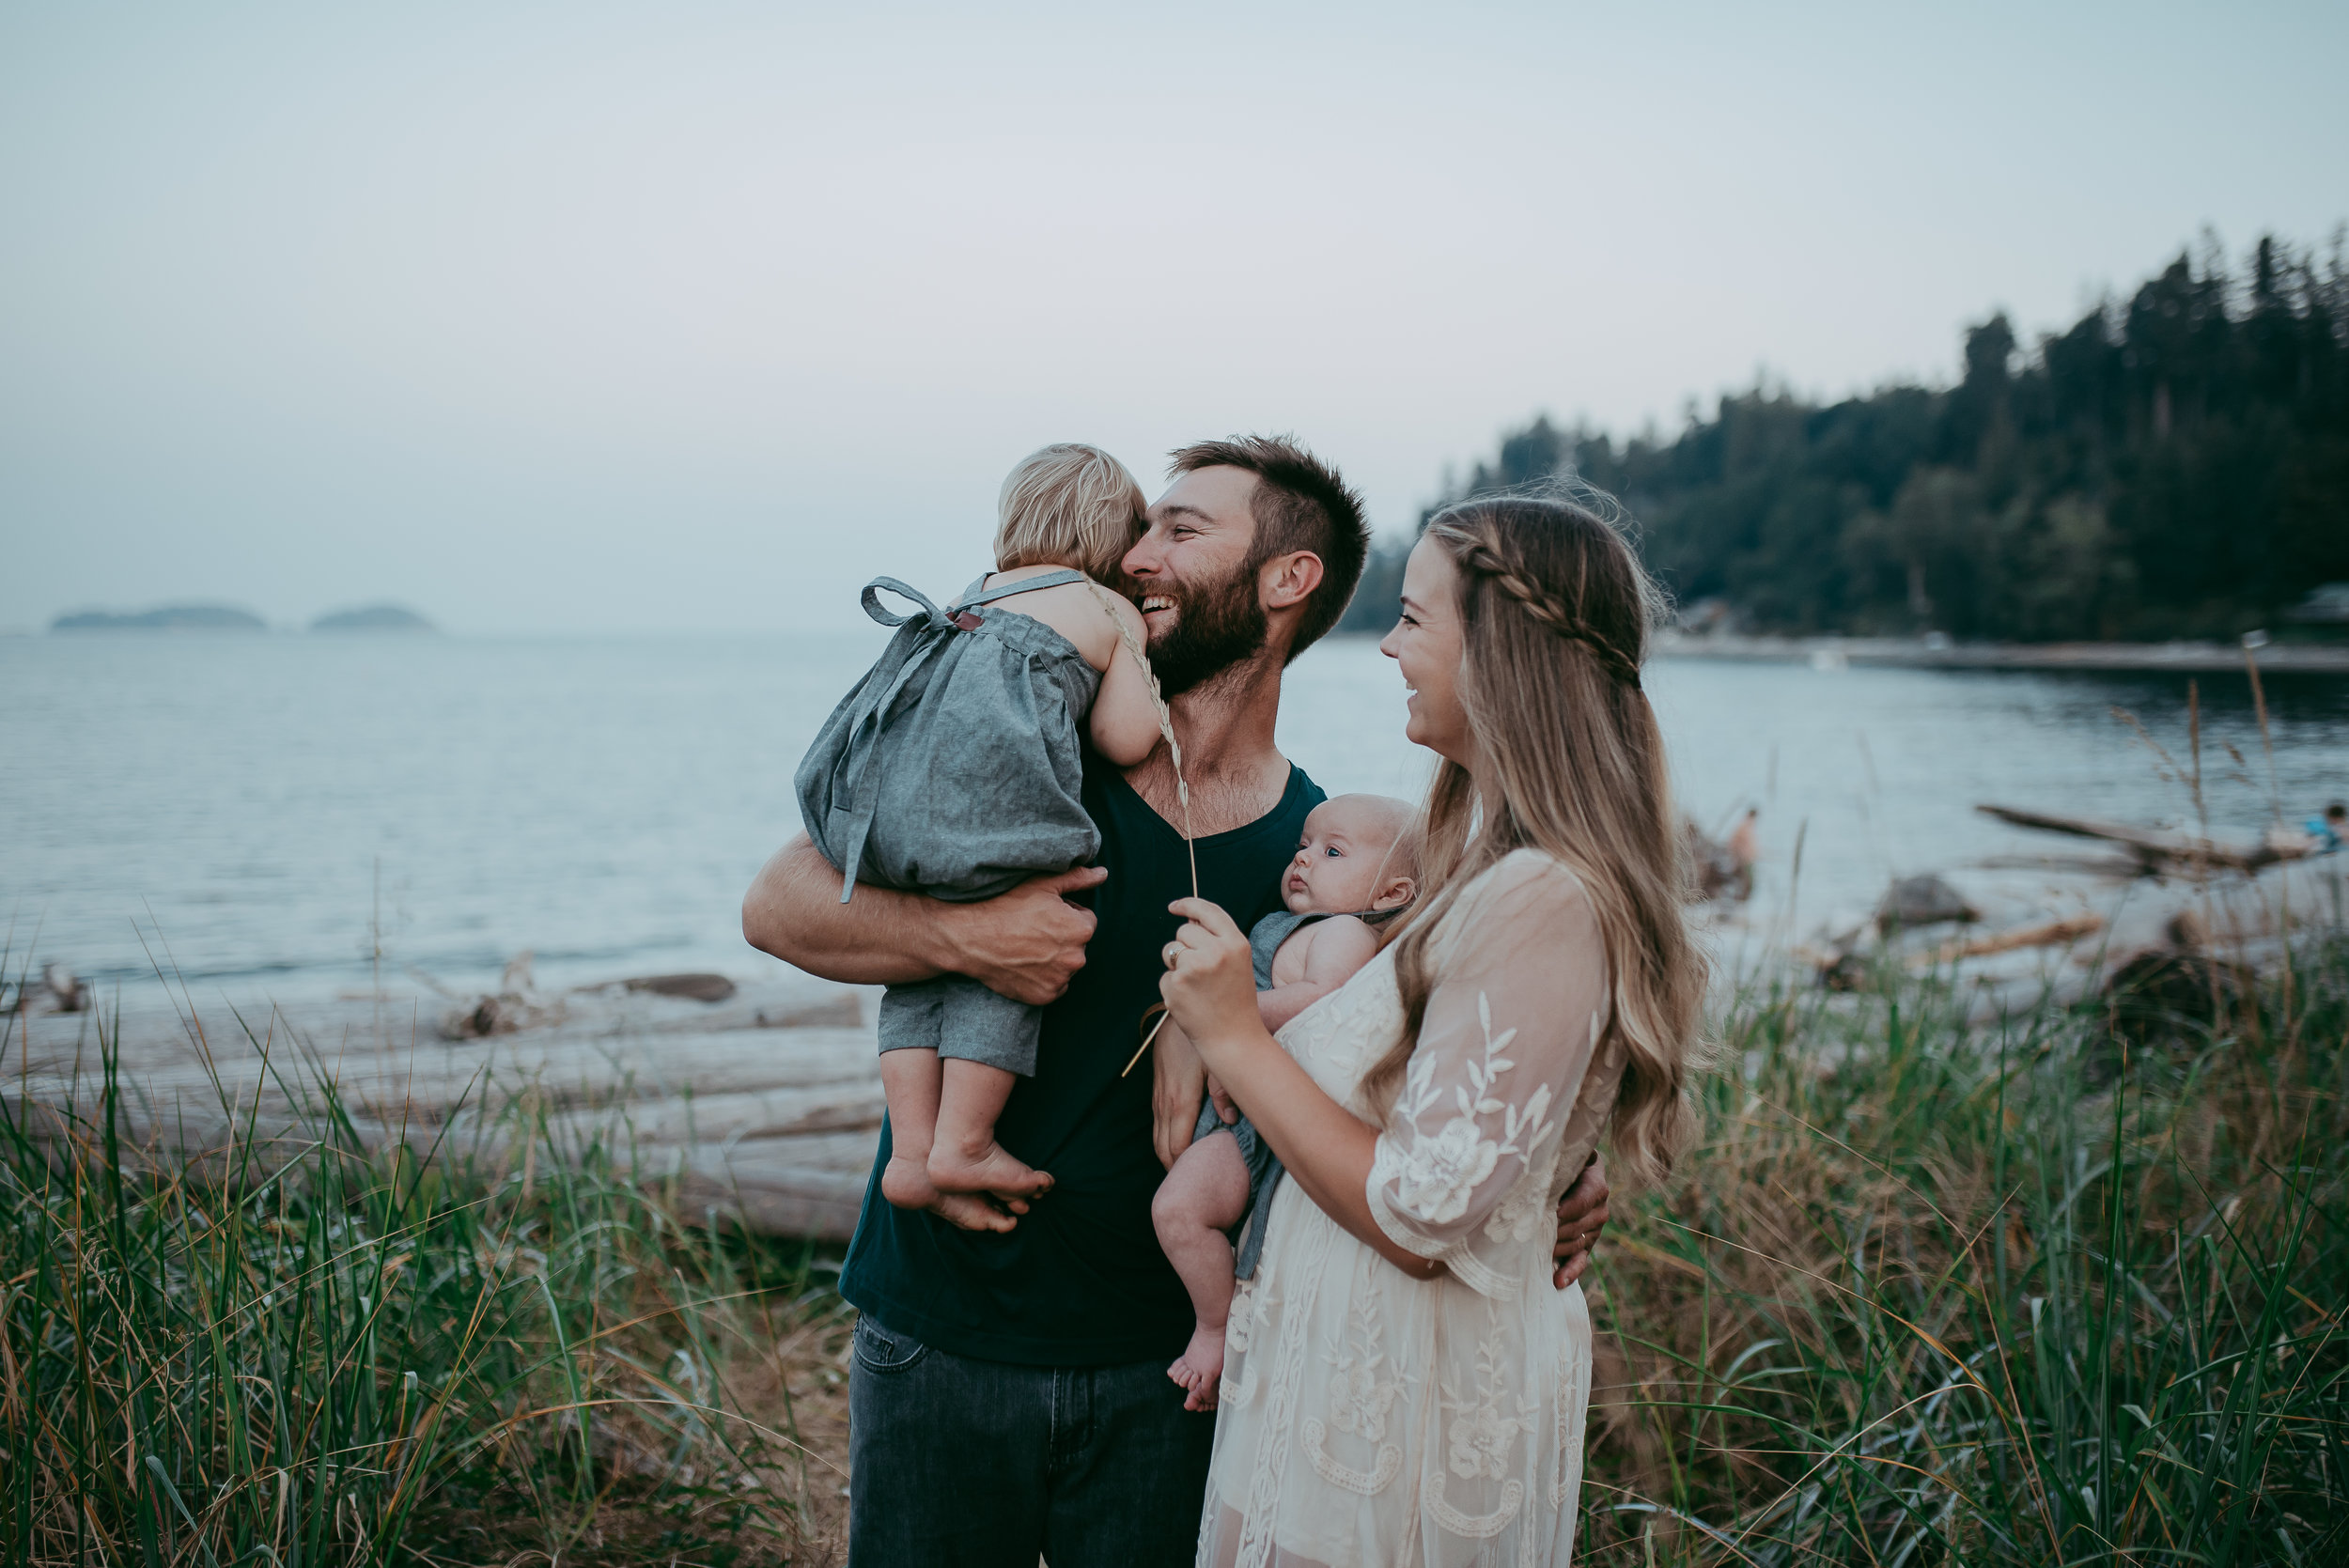 Lifestyle Family Photographer Porteau Cove, Squamish B.C [ Paige Lorraine Photography }.jpg